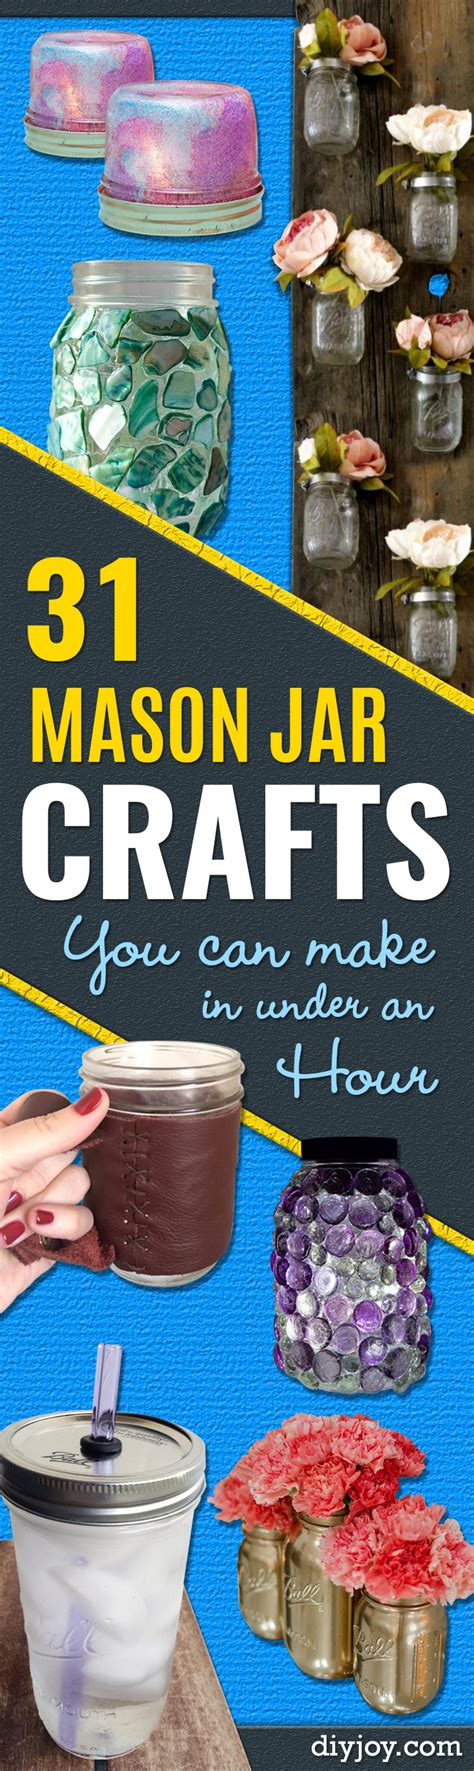 mason jar crafts       hour